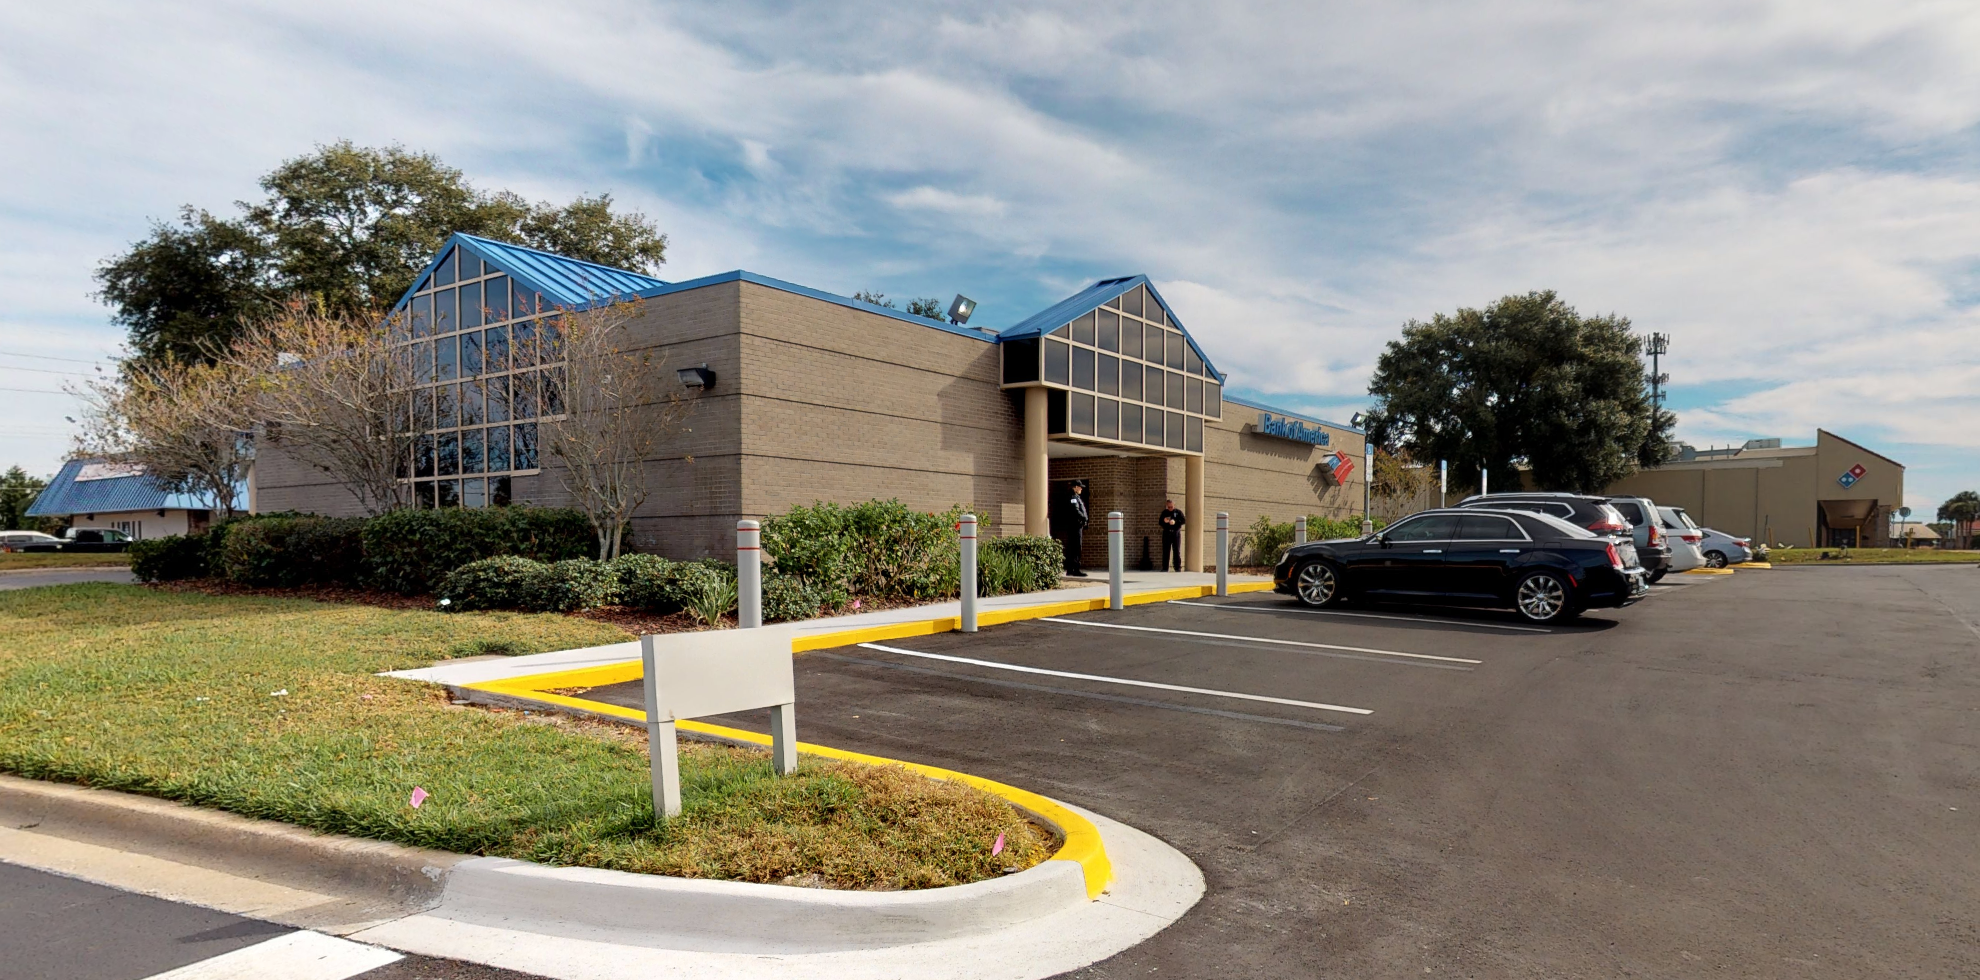 Bank of America financial center with drive-thru ATM   3010 Cypress Gardens Rd, Winter Haven, FL 33884